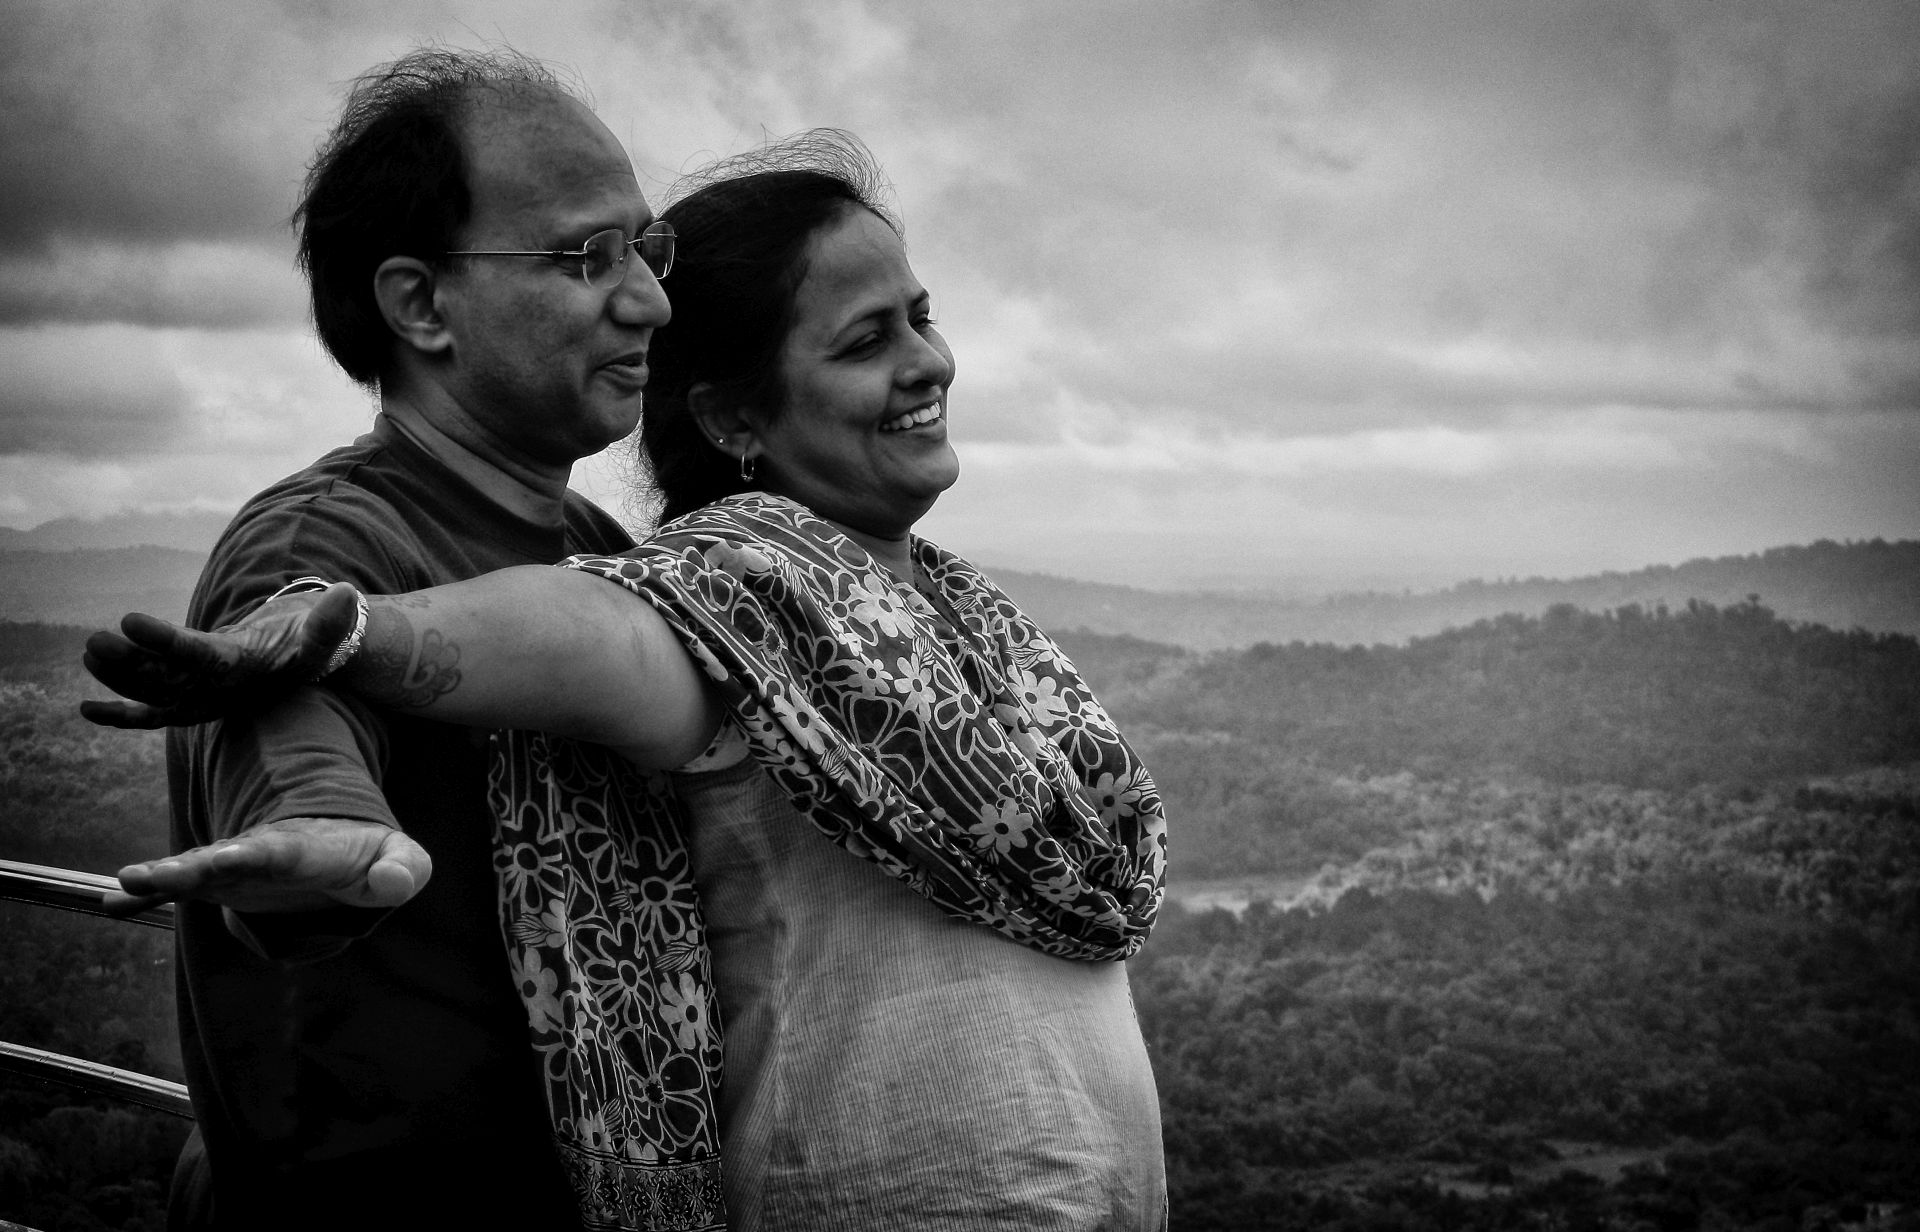 mom dad titanic pose irfan hussain thereddotman wordpress